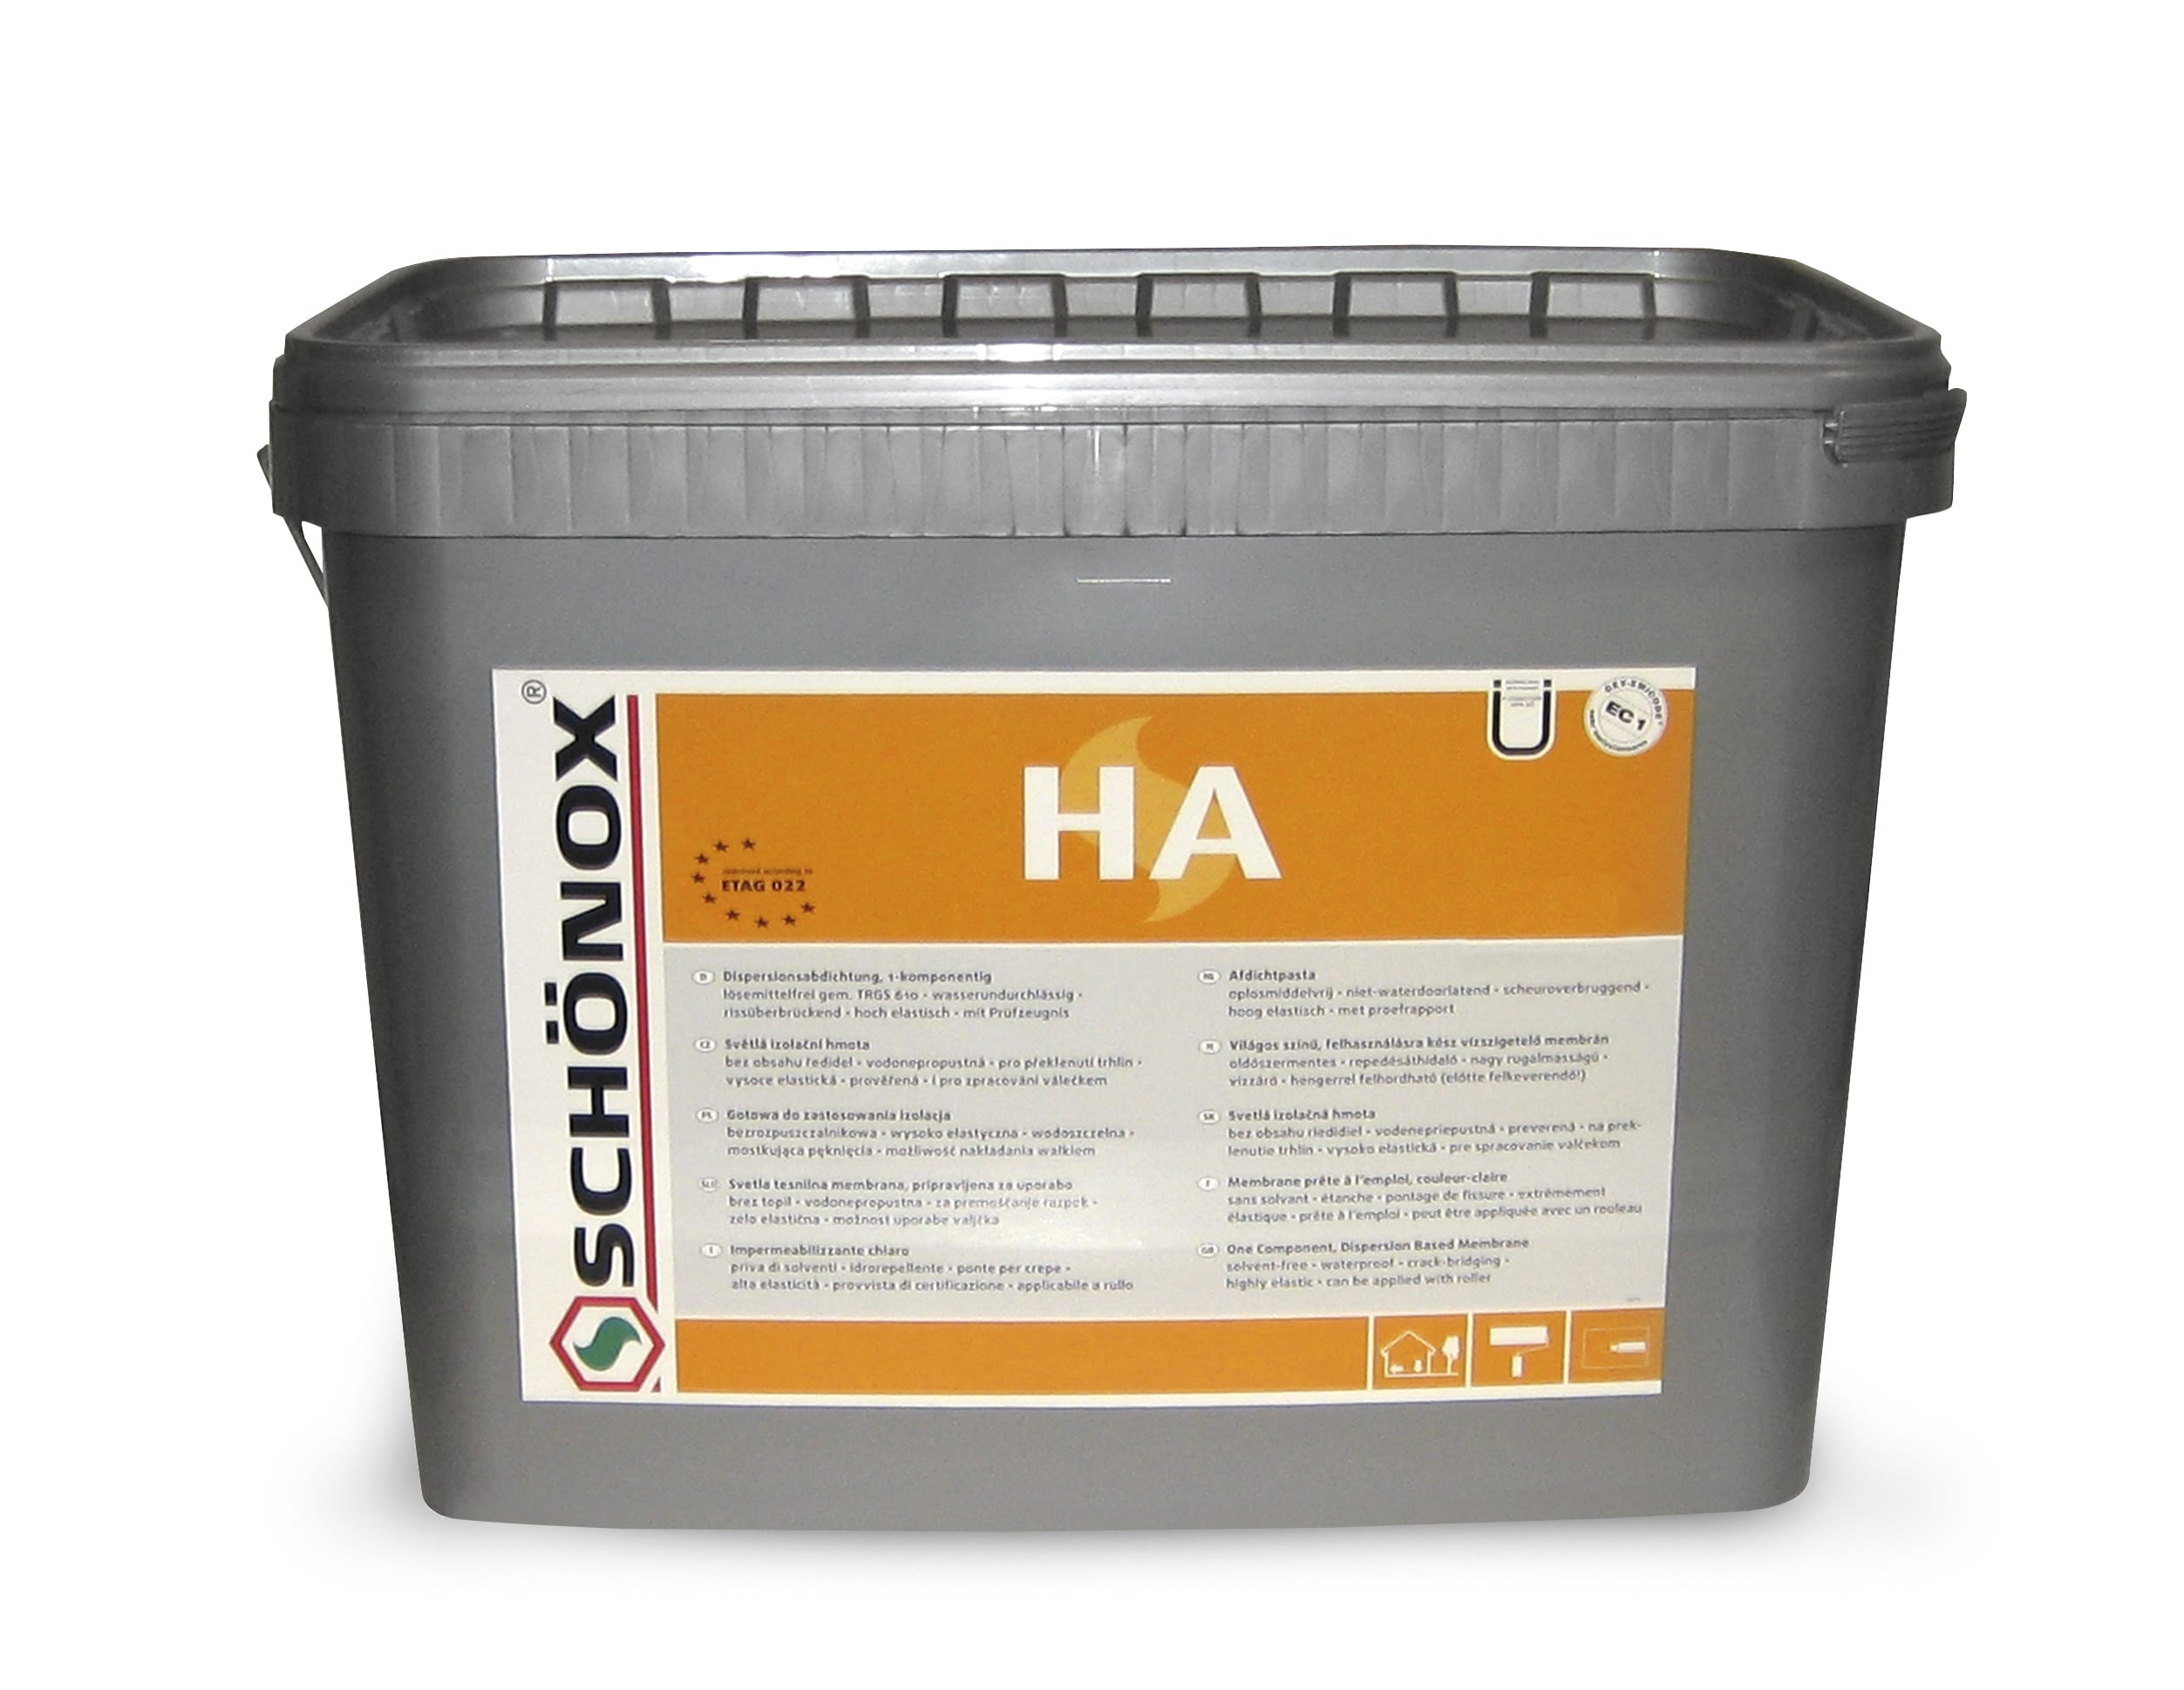 Image of HA Product Bucket